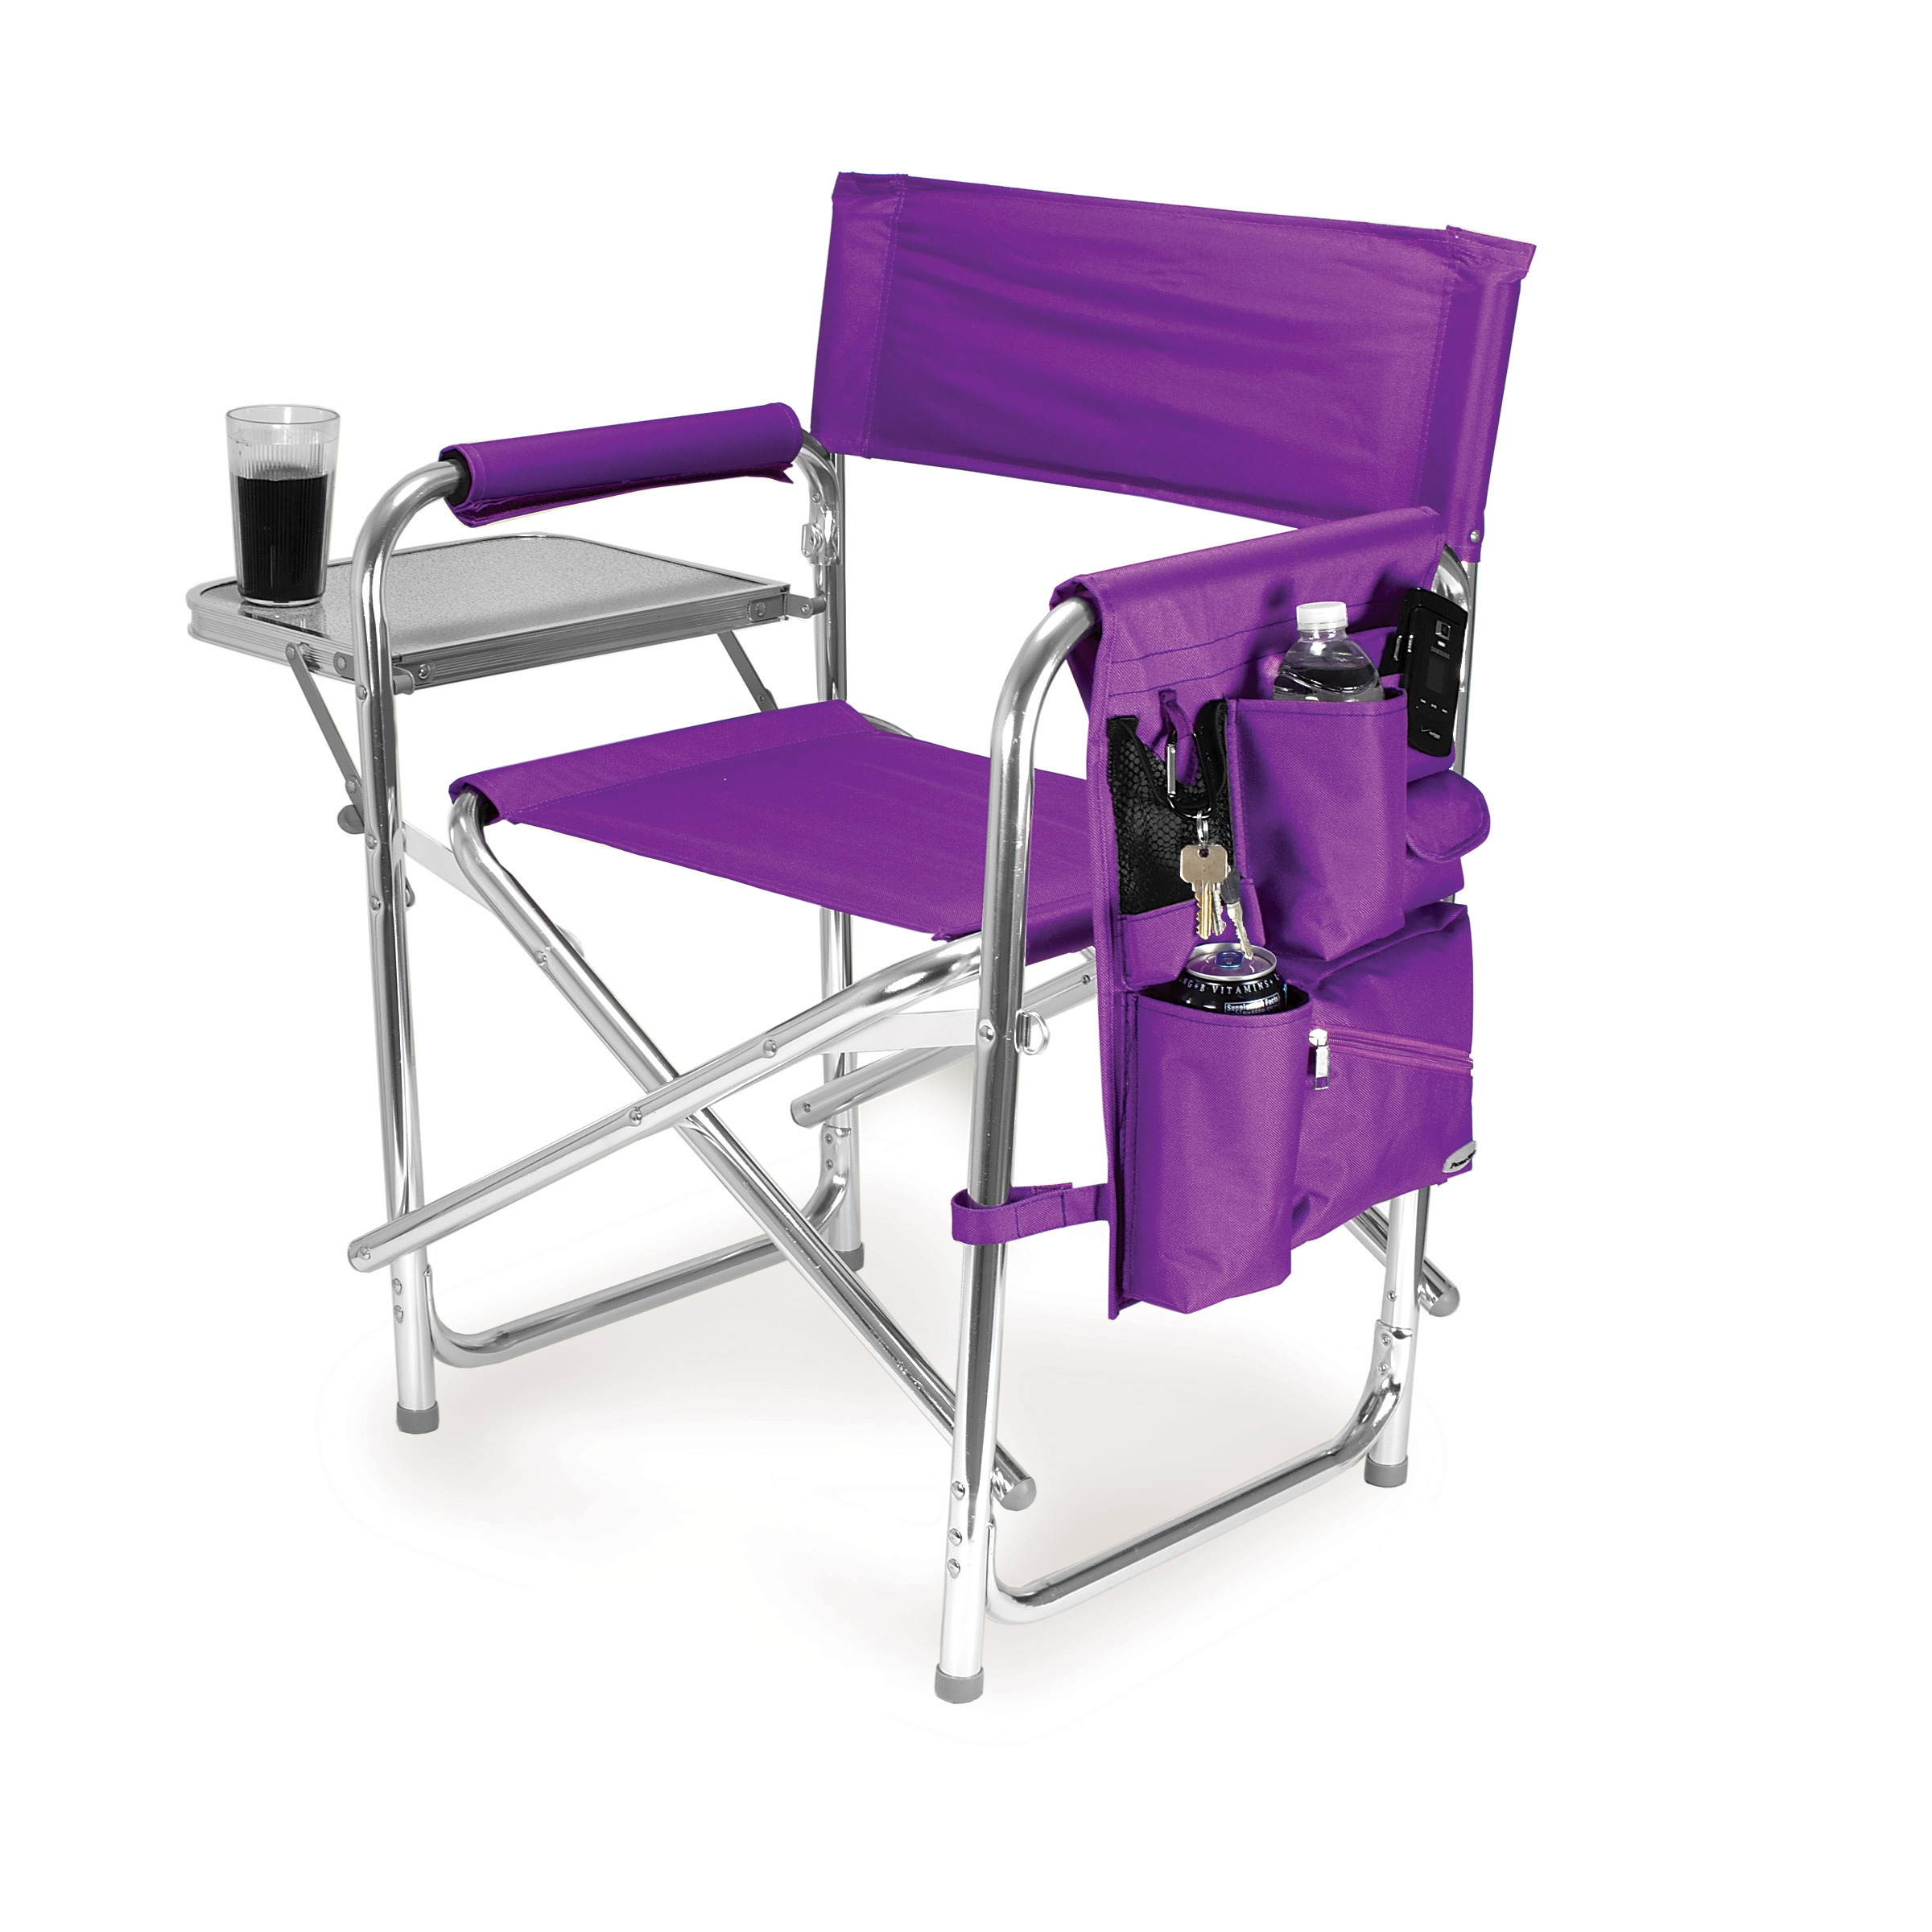 natural gear folding chair small leather chairs picnic time purple portable sports camping